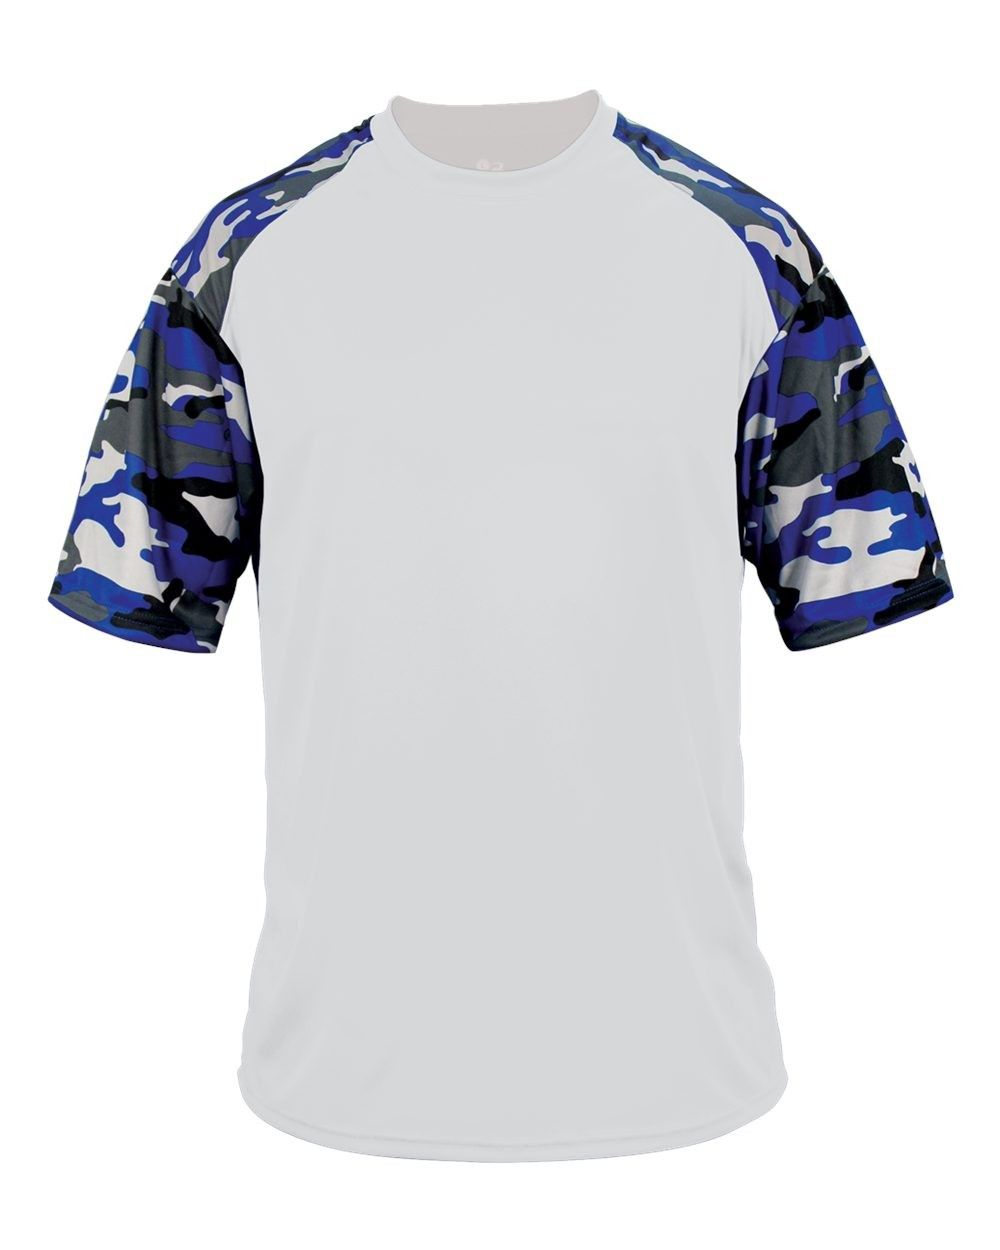 4b08c0d7c57 Youth Camo Sport Performance Shirt by Badger Sport Style Number 2141 ...